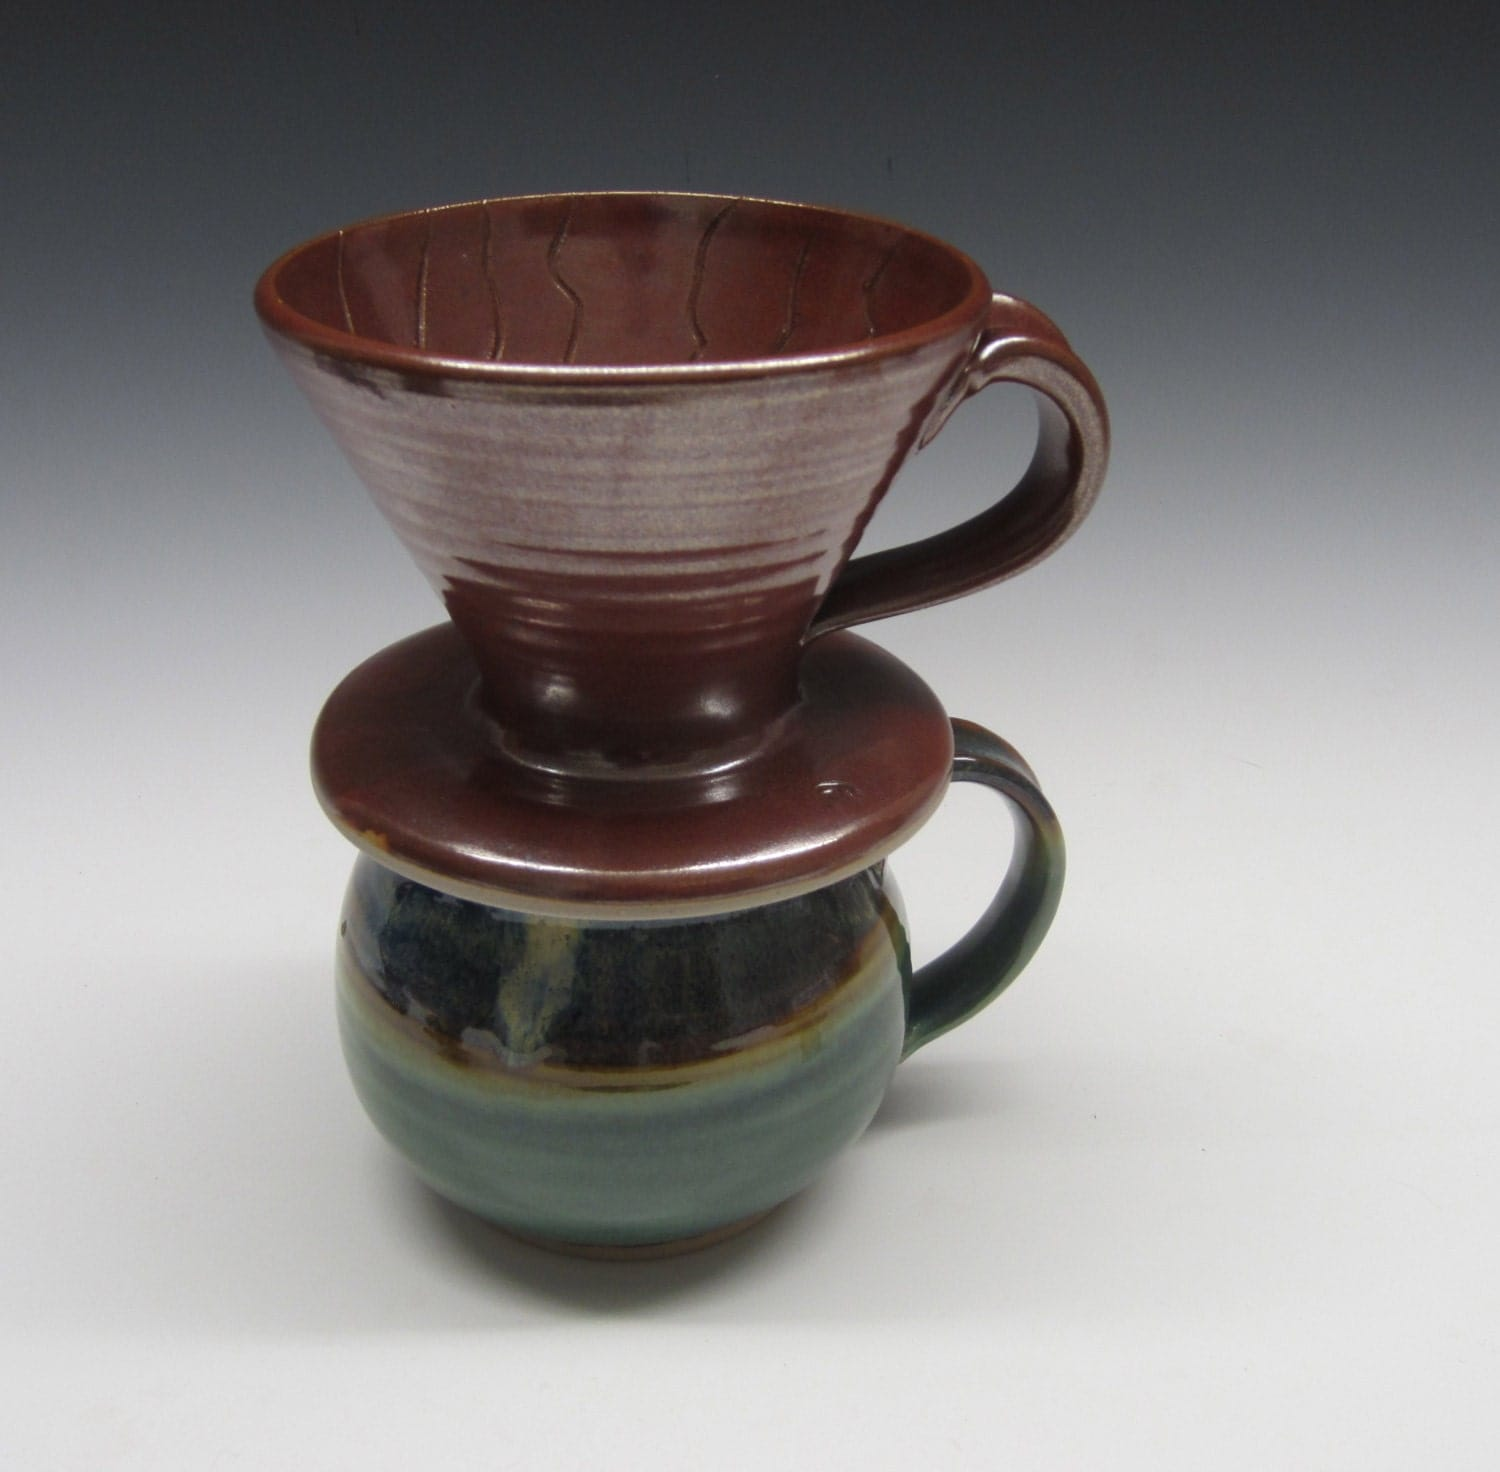 Drip coffee maker / handmade / pottery / reddish by SookjaeArt